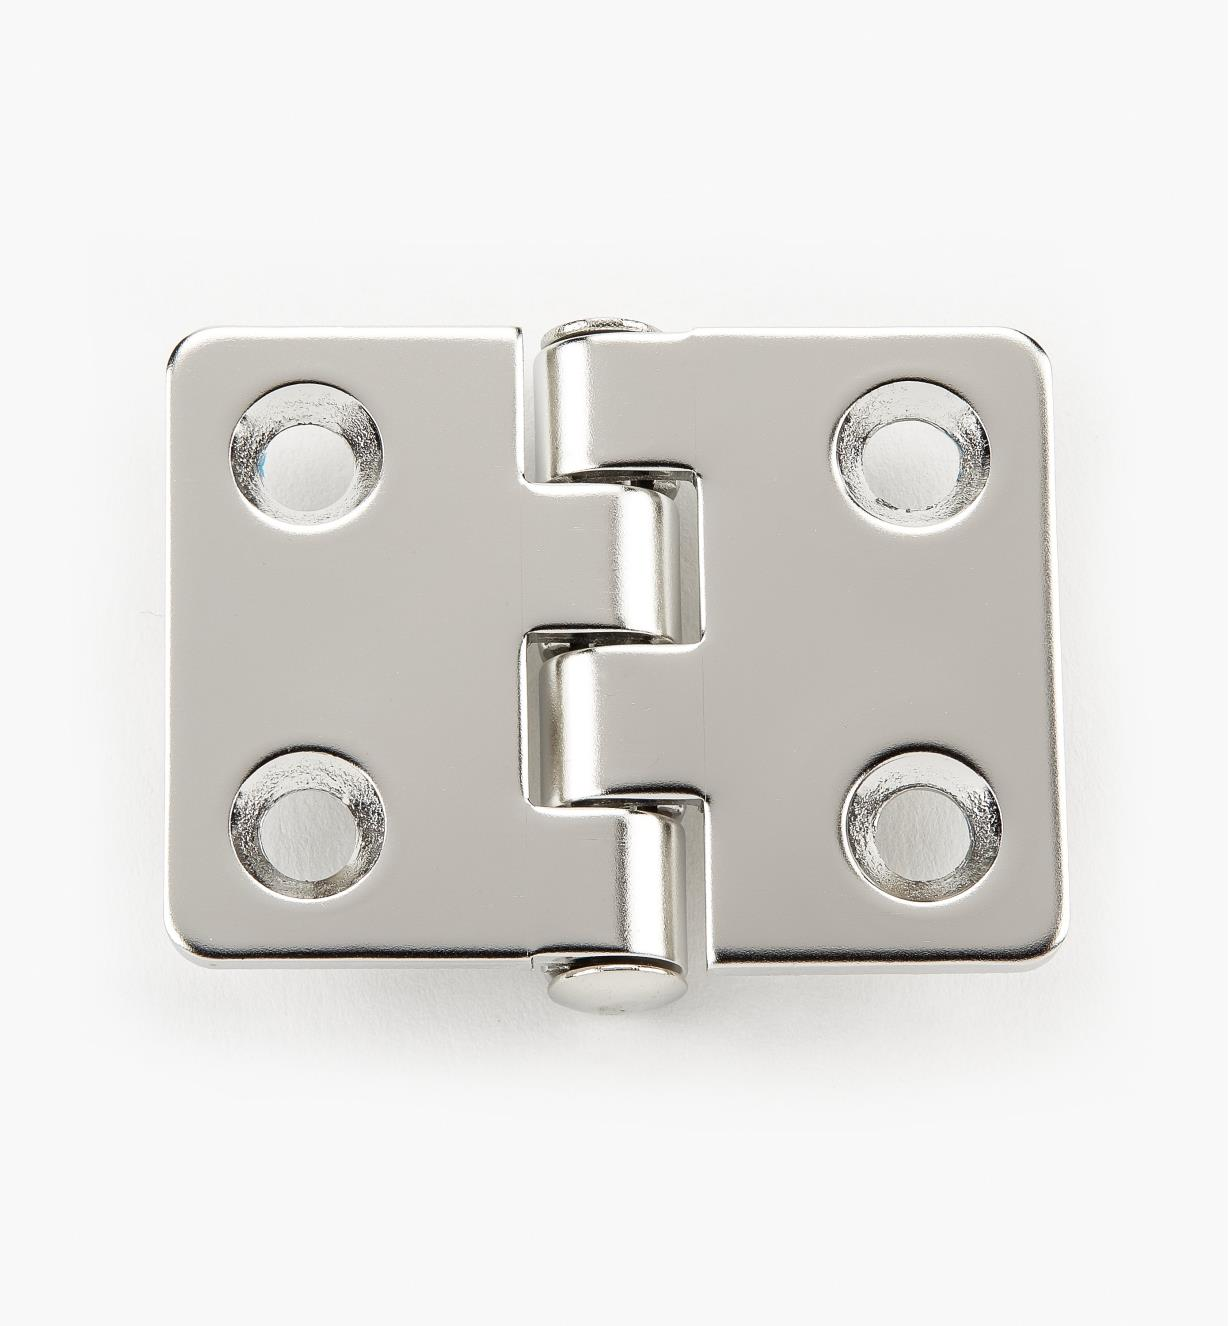 01W9852 - 38mm x 25mm x 25mm Recessed/Flush Hinge